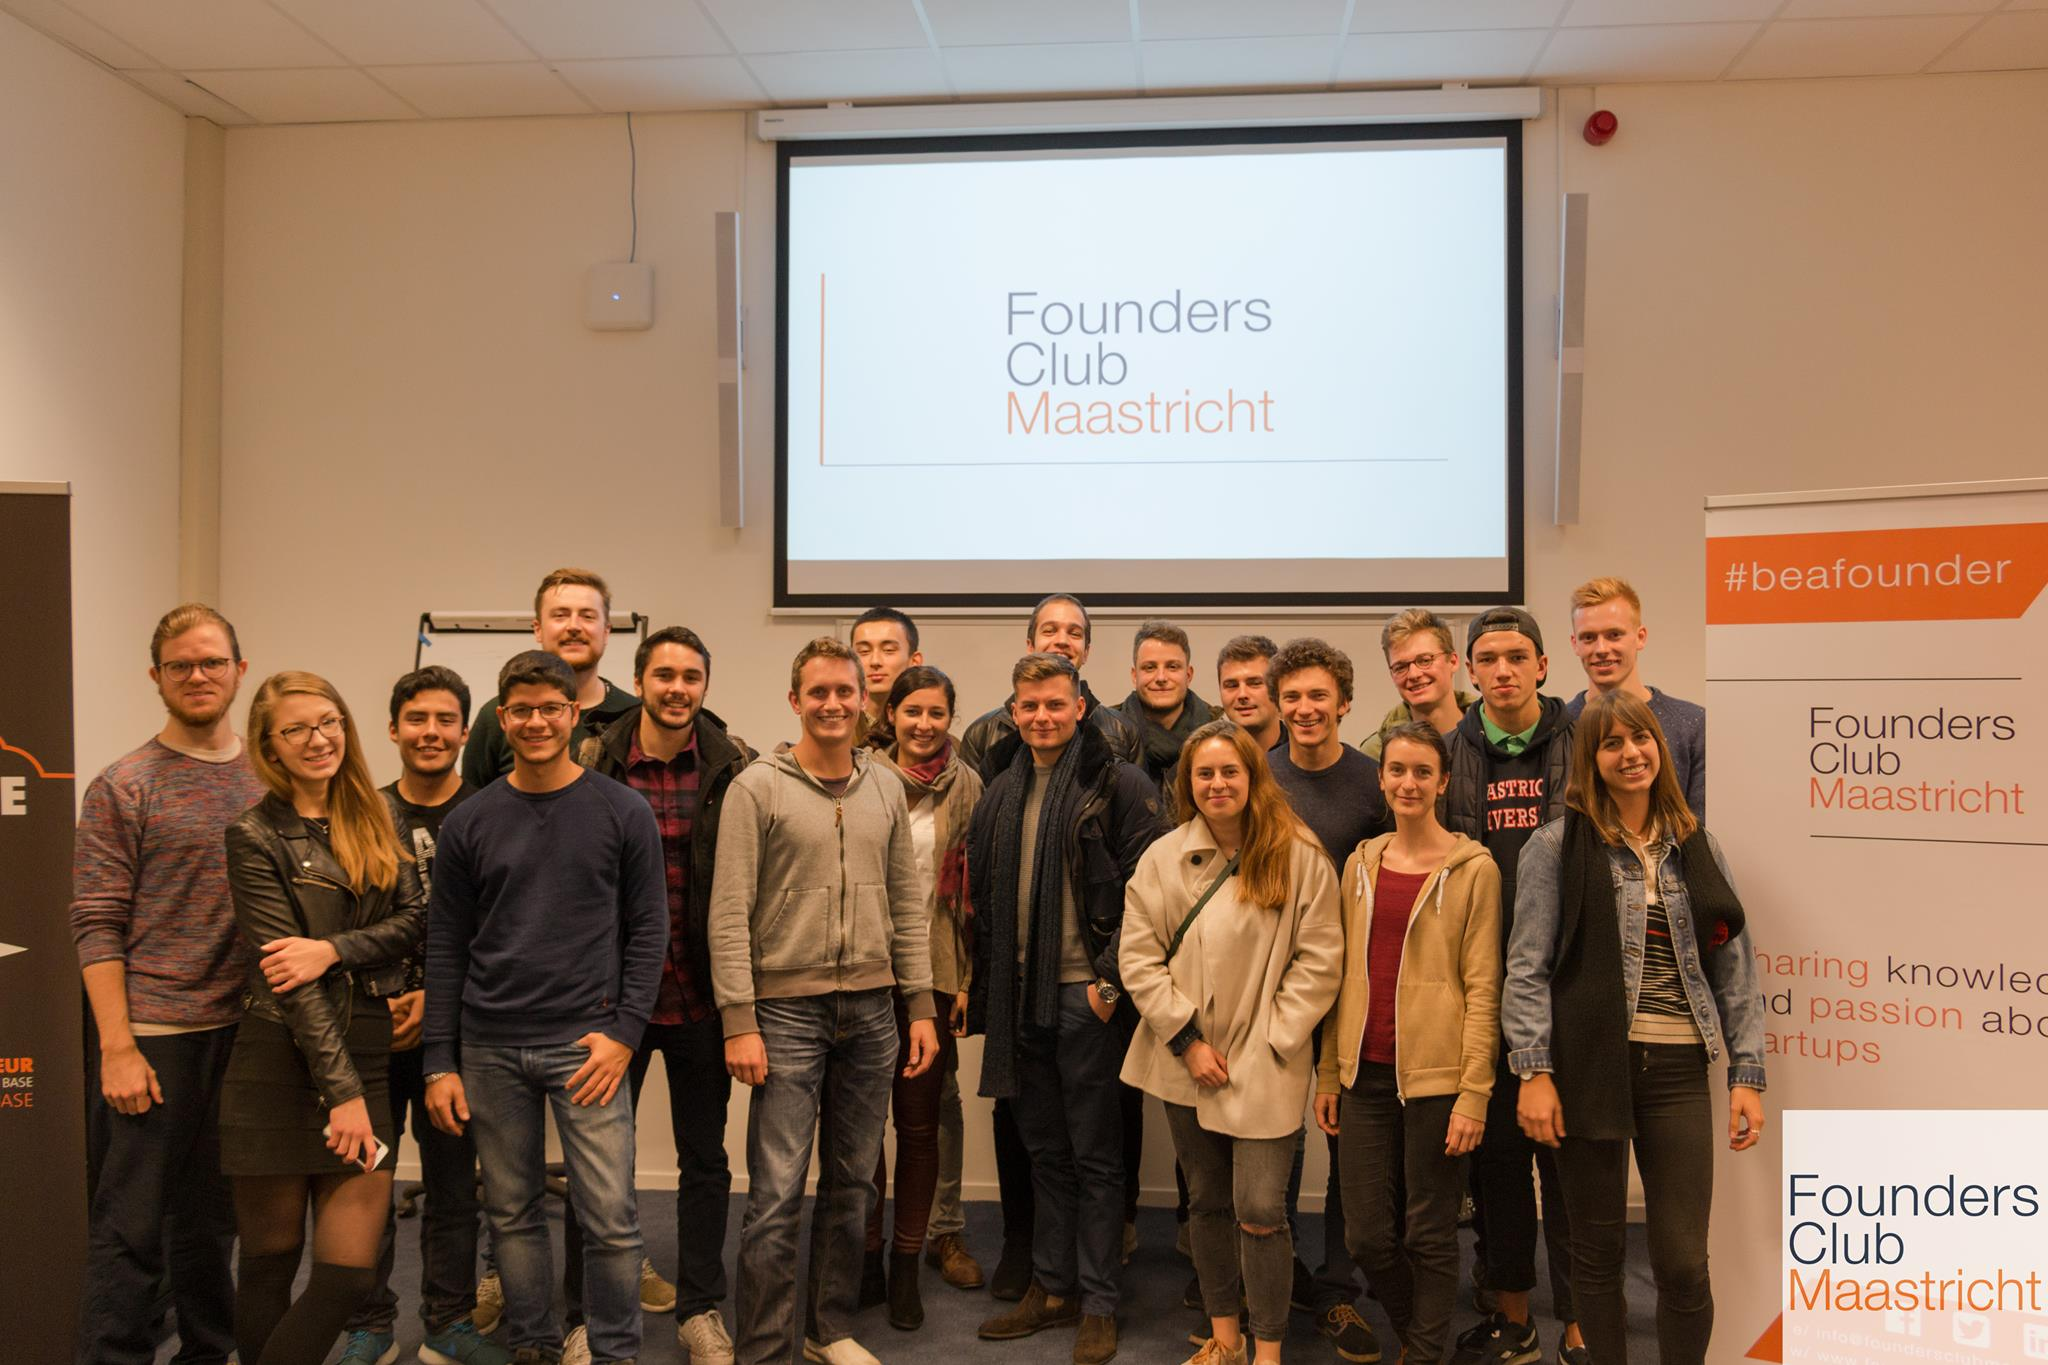 Discussion with international business students and future entrepreneurs at Maastricht University in Holland